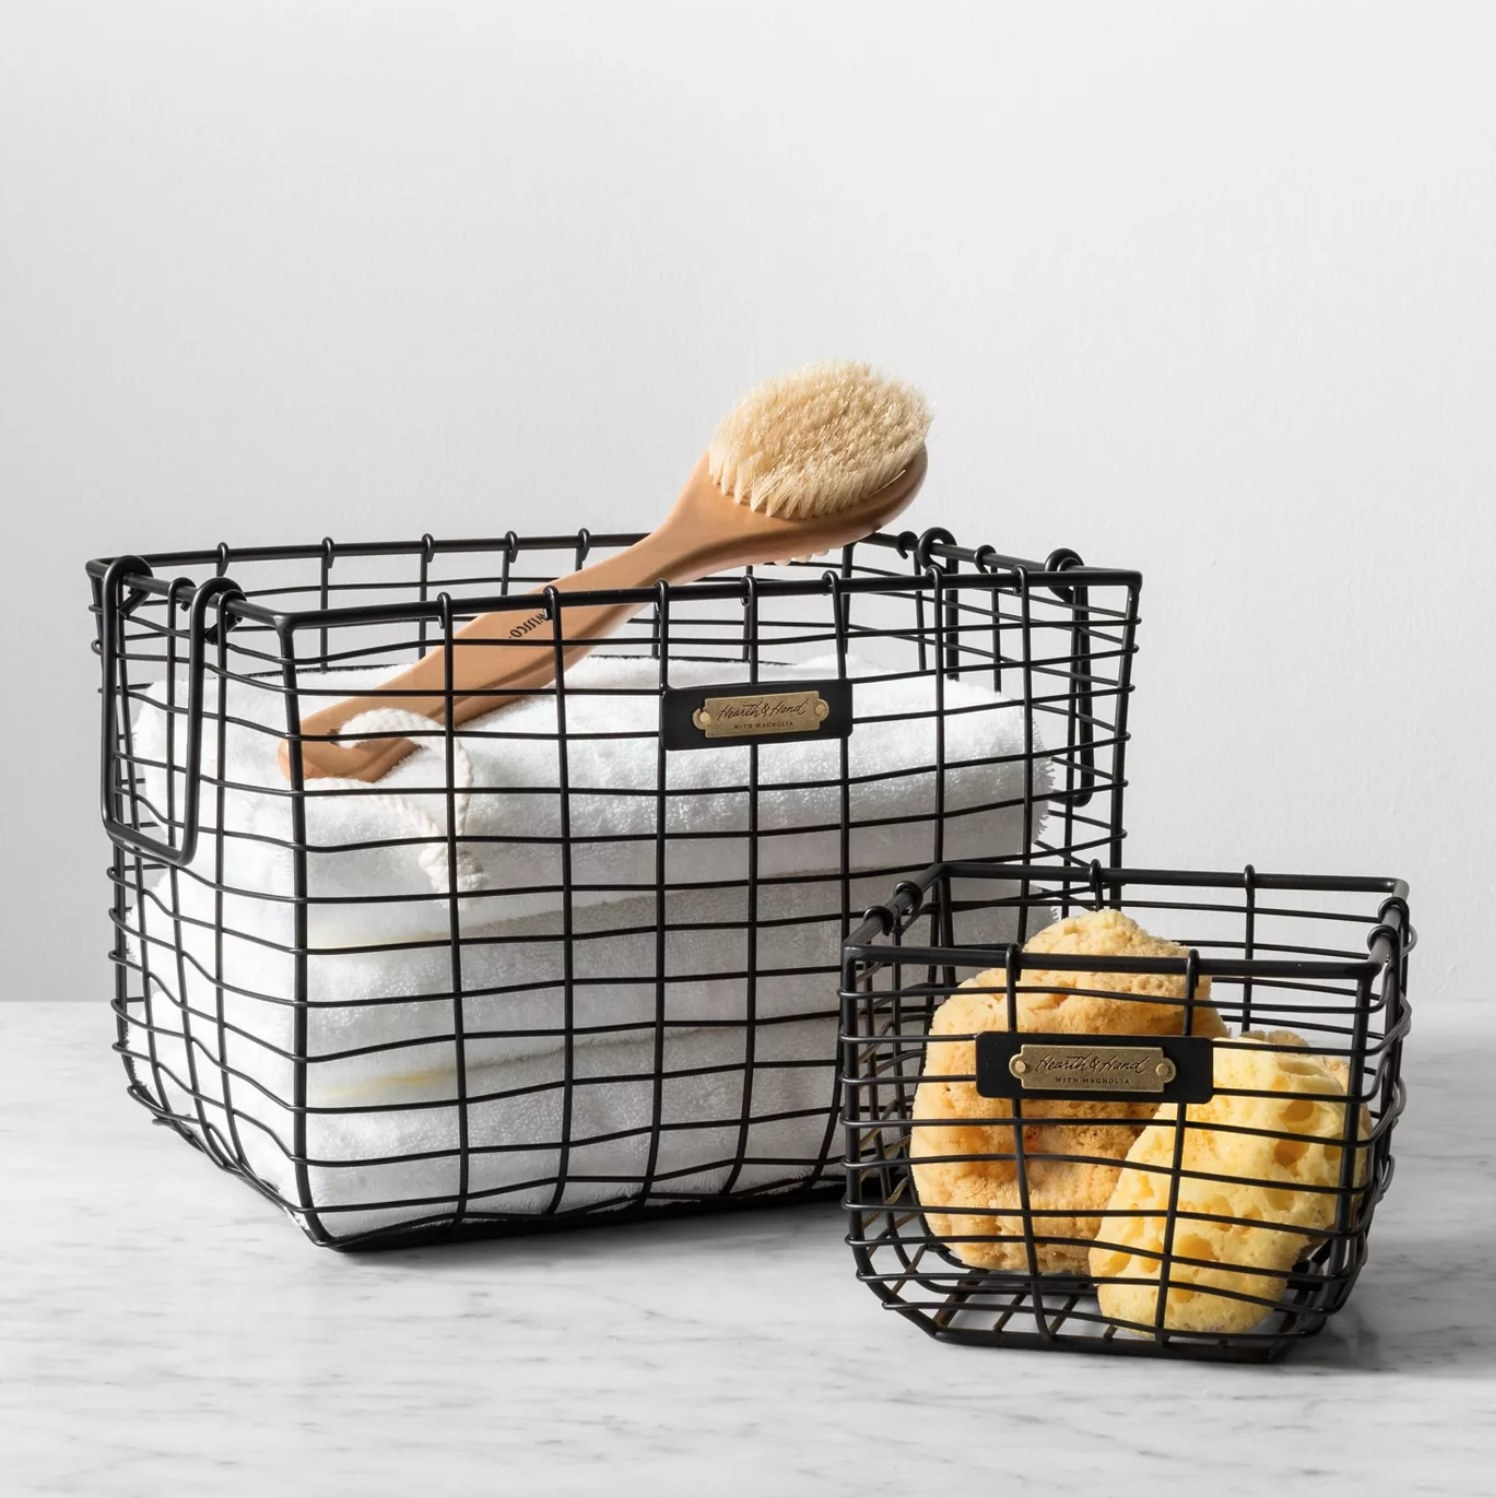 two of the wire baskets one large version with a towel and scrubber and a smaller version with sponges in it